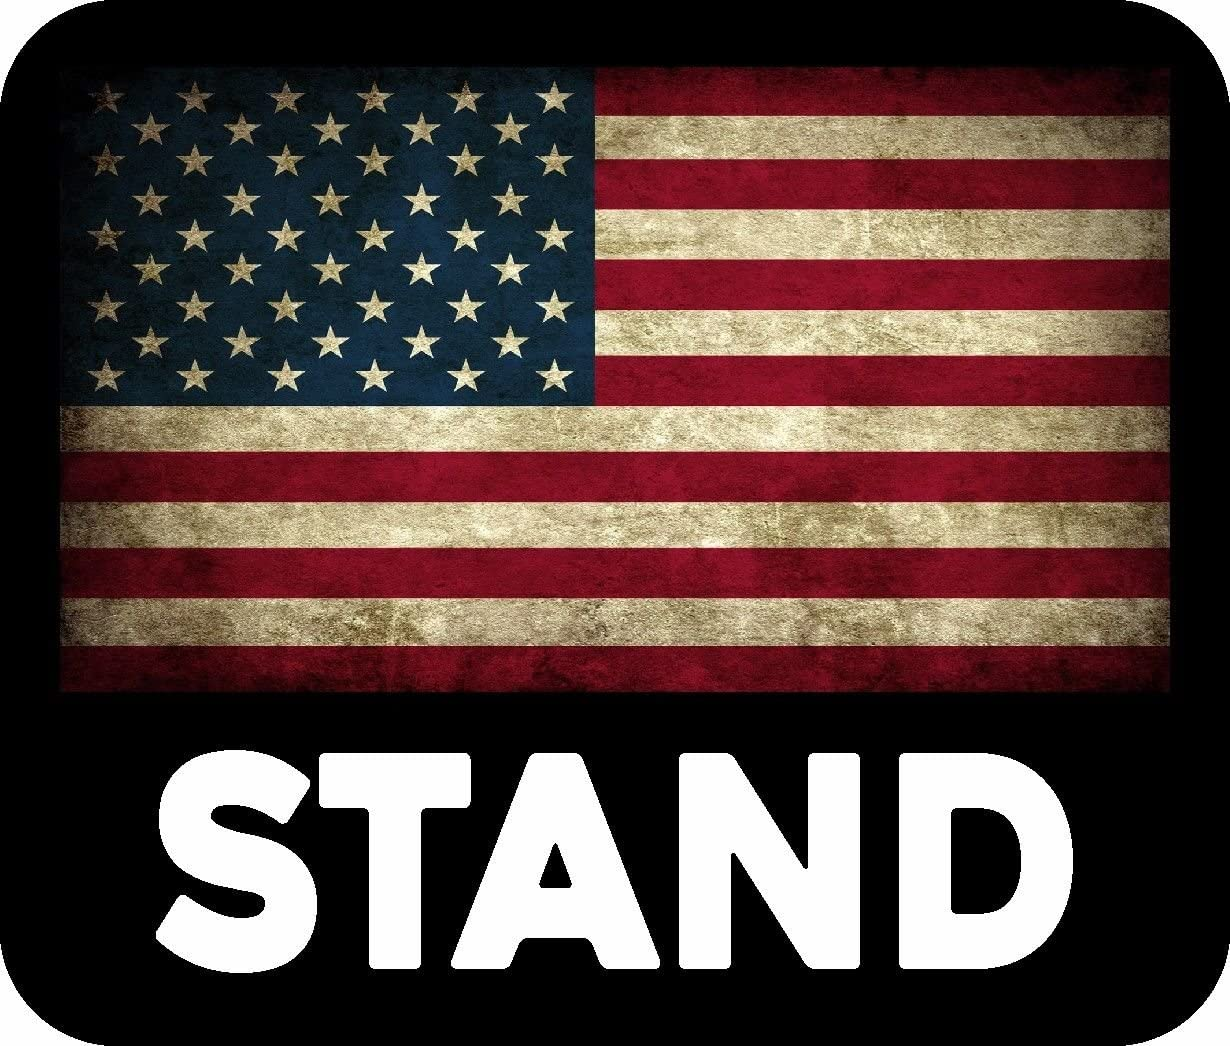 ION Graphics Magnet Trump Support Stand American Flag USA MAGA Decal Political Magnets Police Decal Car Fridge Metal Reuseable